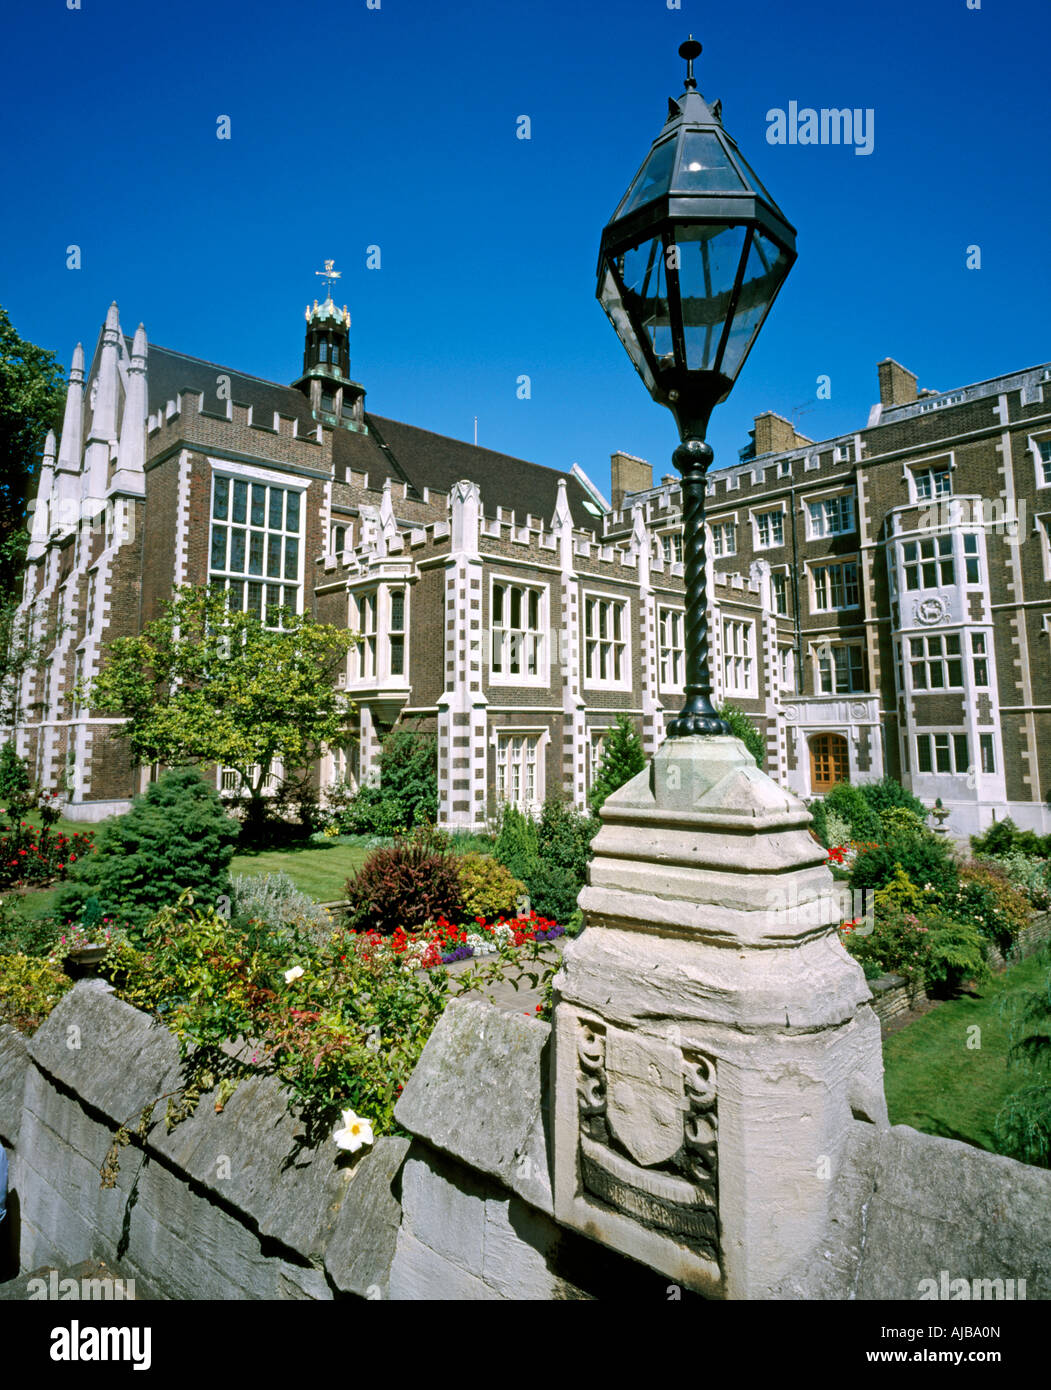 Middle Temple gardens in Inns of Court City of London EC4 England National historic landmark building HXXZsmng - Stock Image